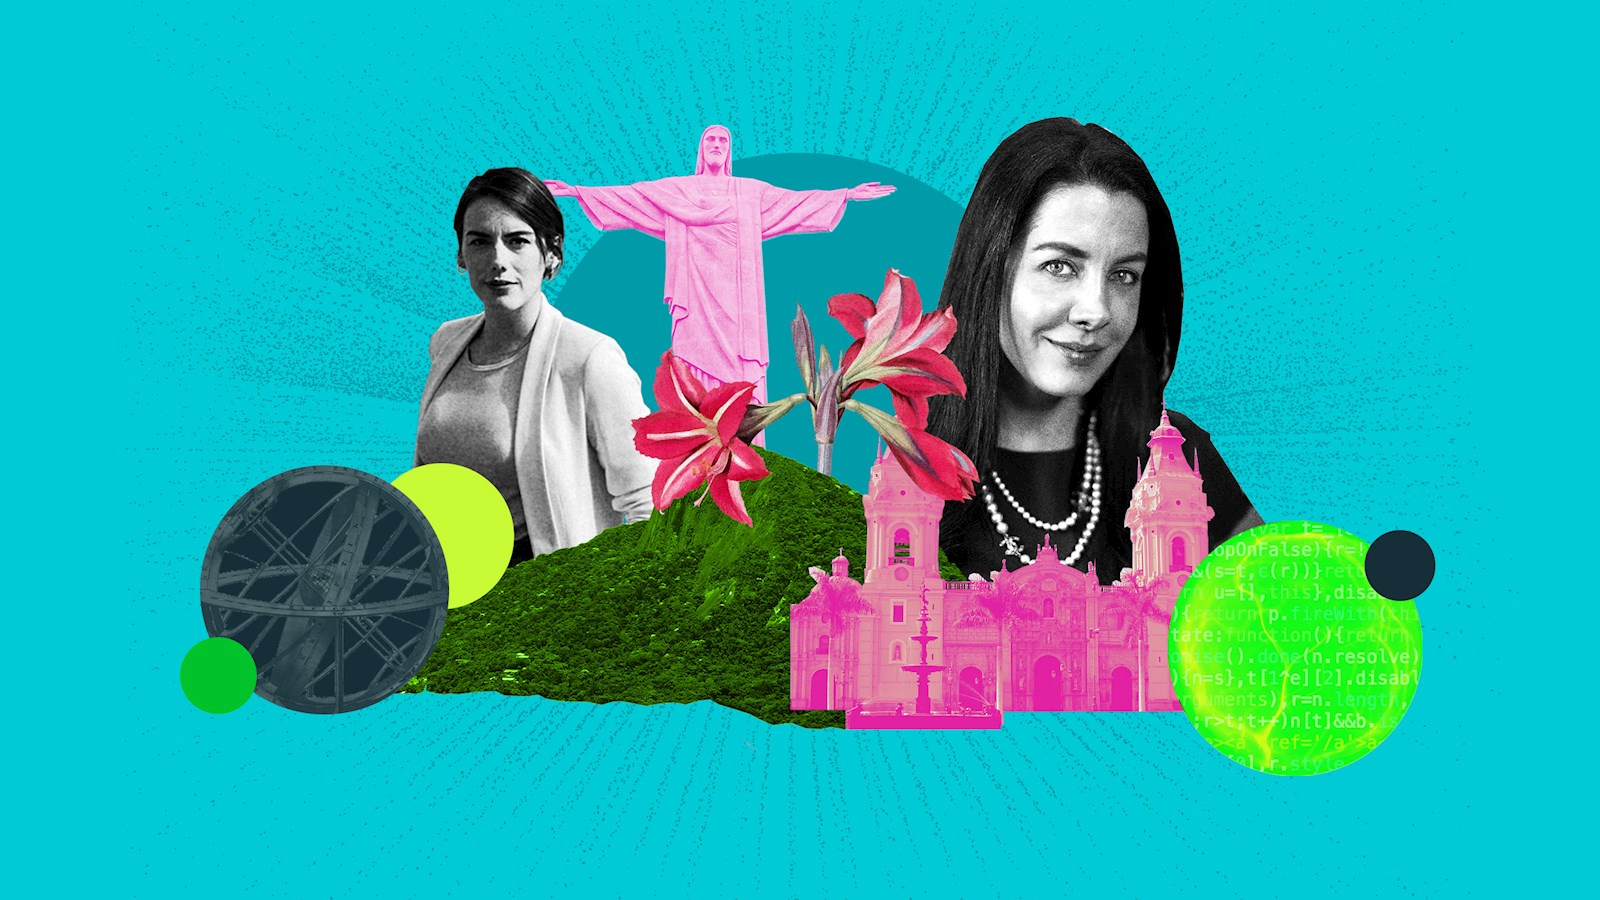 In conversation: Luciana Rodrigues and Cristina Risso